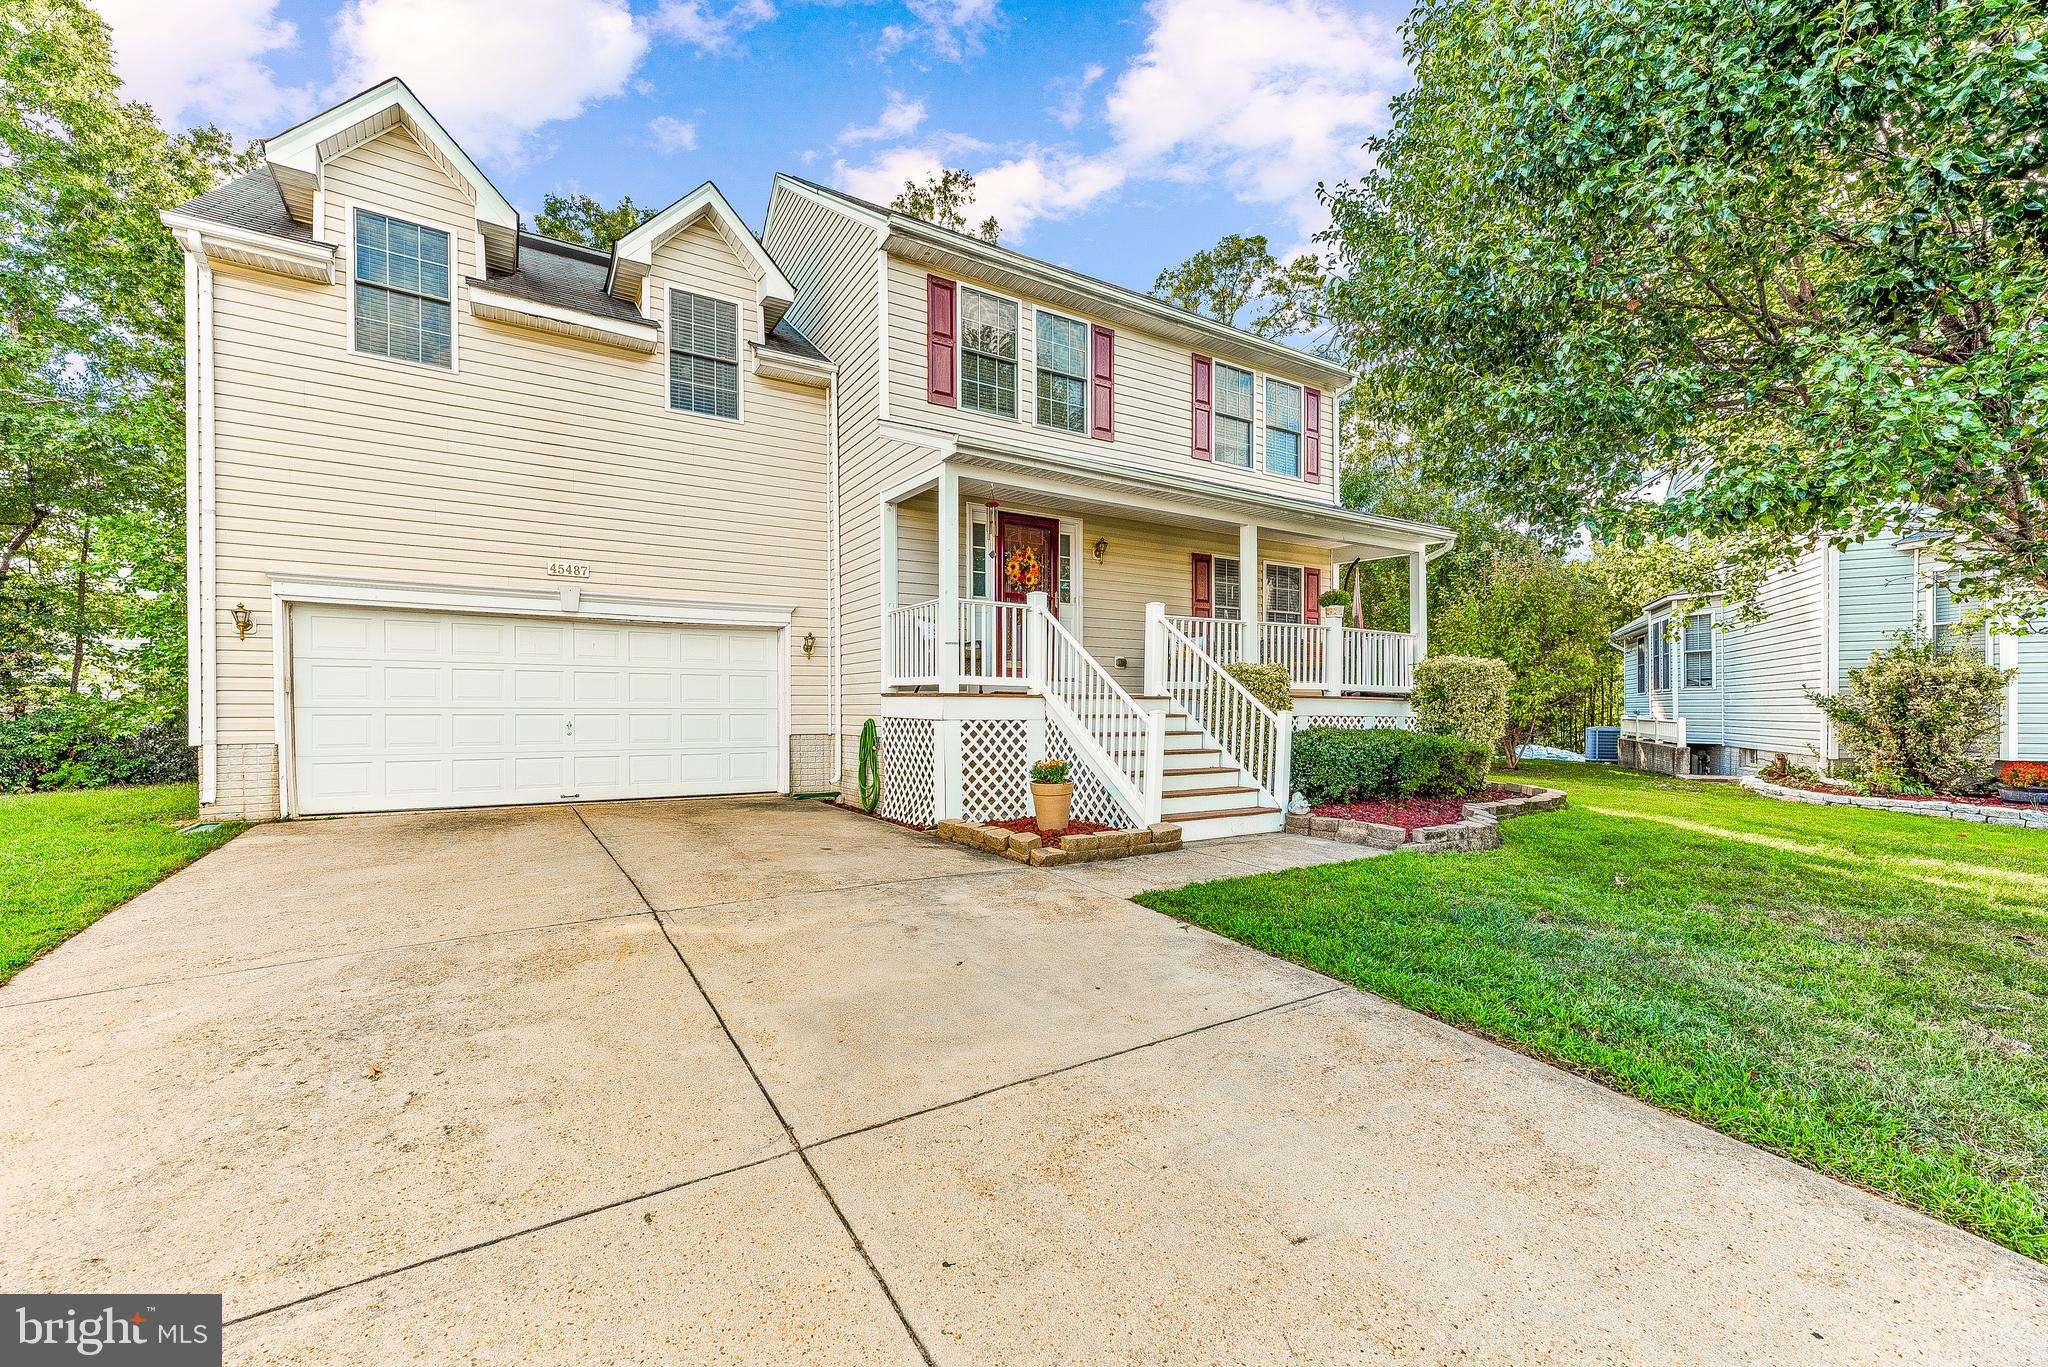 Immaculate! 5 Bedroom 2.5 Bathroom Colonial w/ 2622 Finished SQFT in Hickory Hills! The quiet cul-de